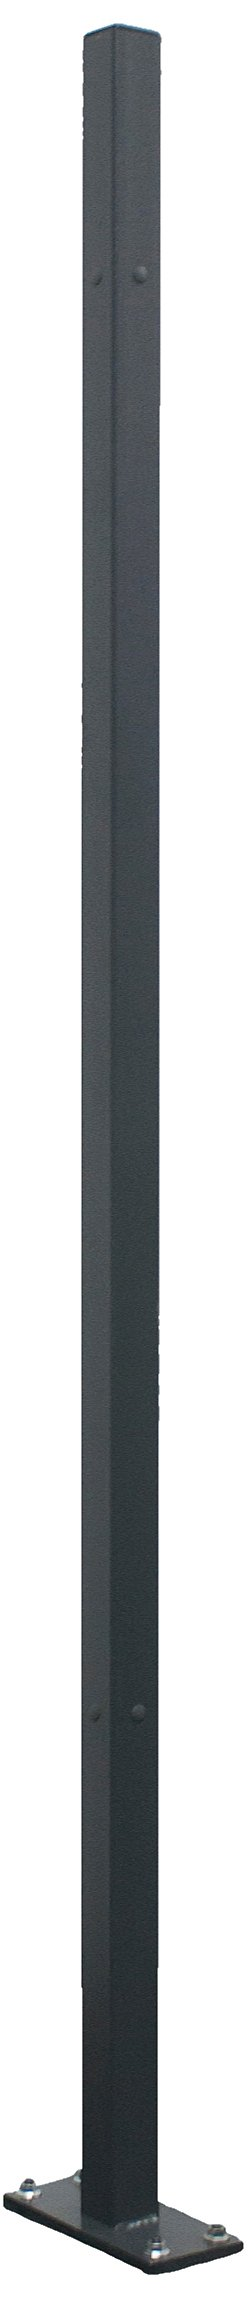 WireCrafters CP12 Square Steel Tubing Corner Post, 12'5-1/4'' Height